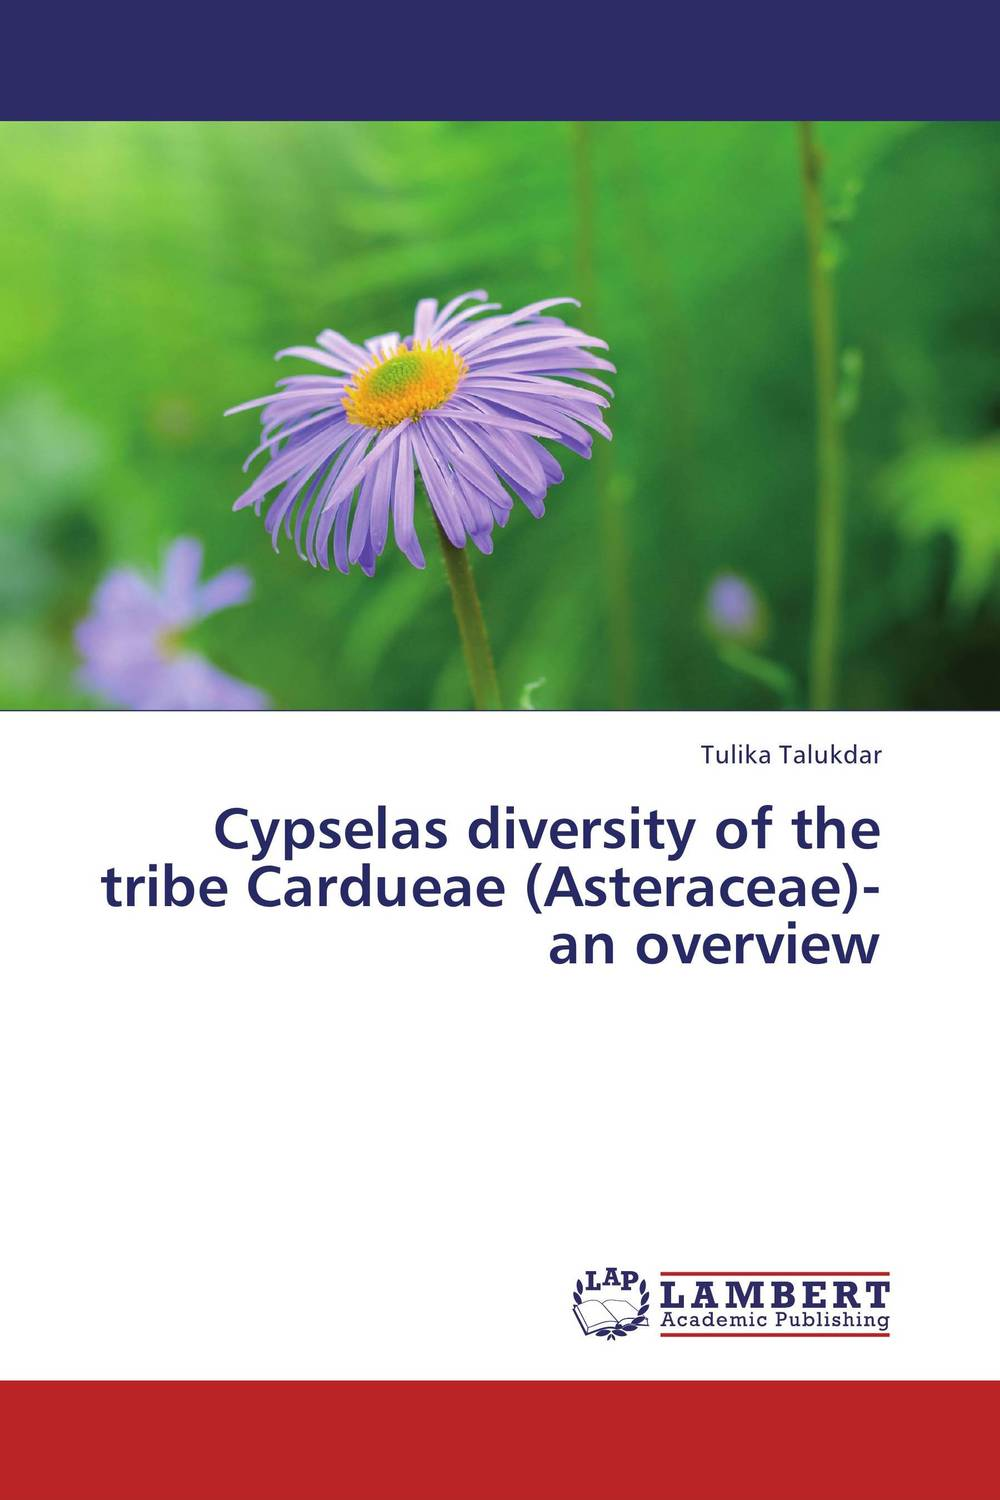 Cypselas diversity of the tribe Cardueae  (Asteraceae)- an overview pla nanocomposite an overview